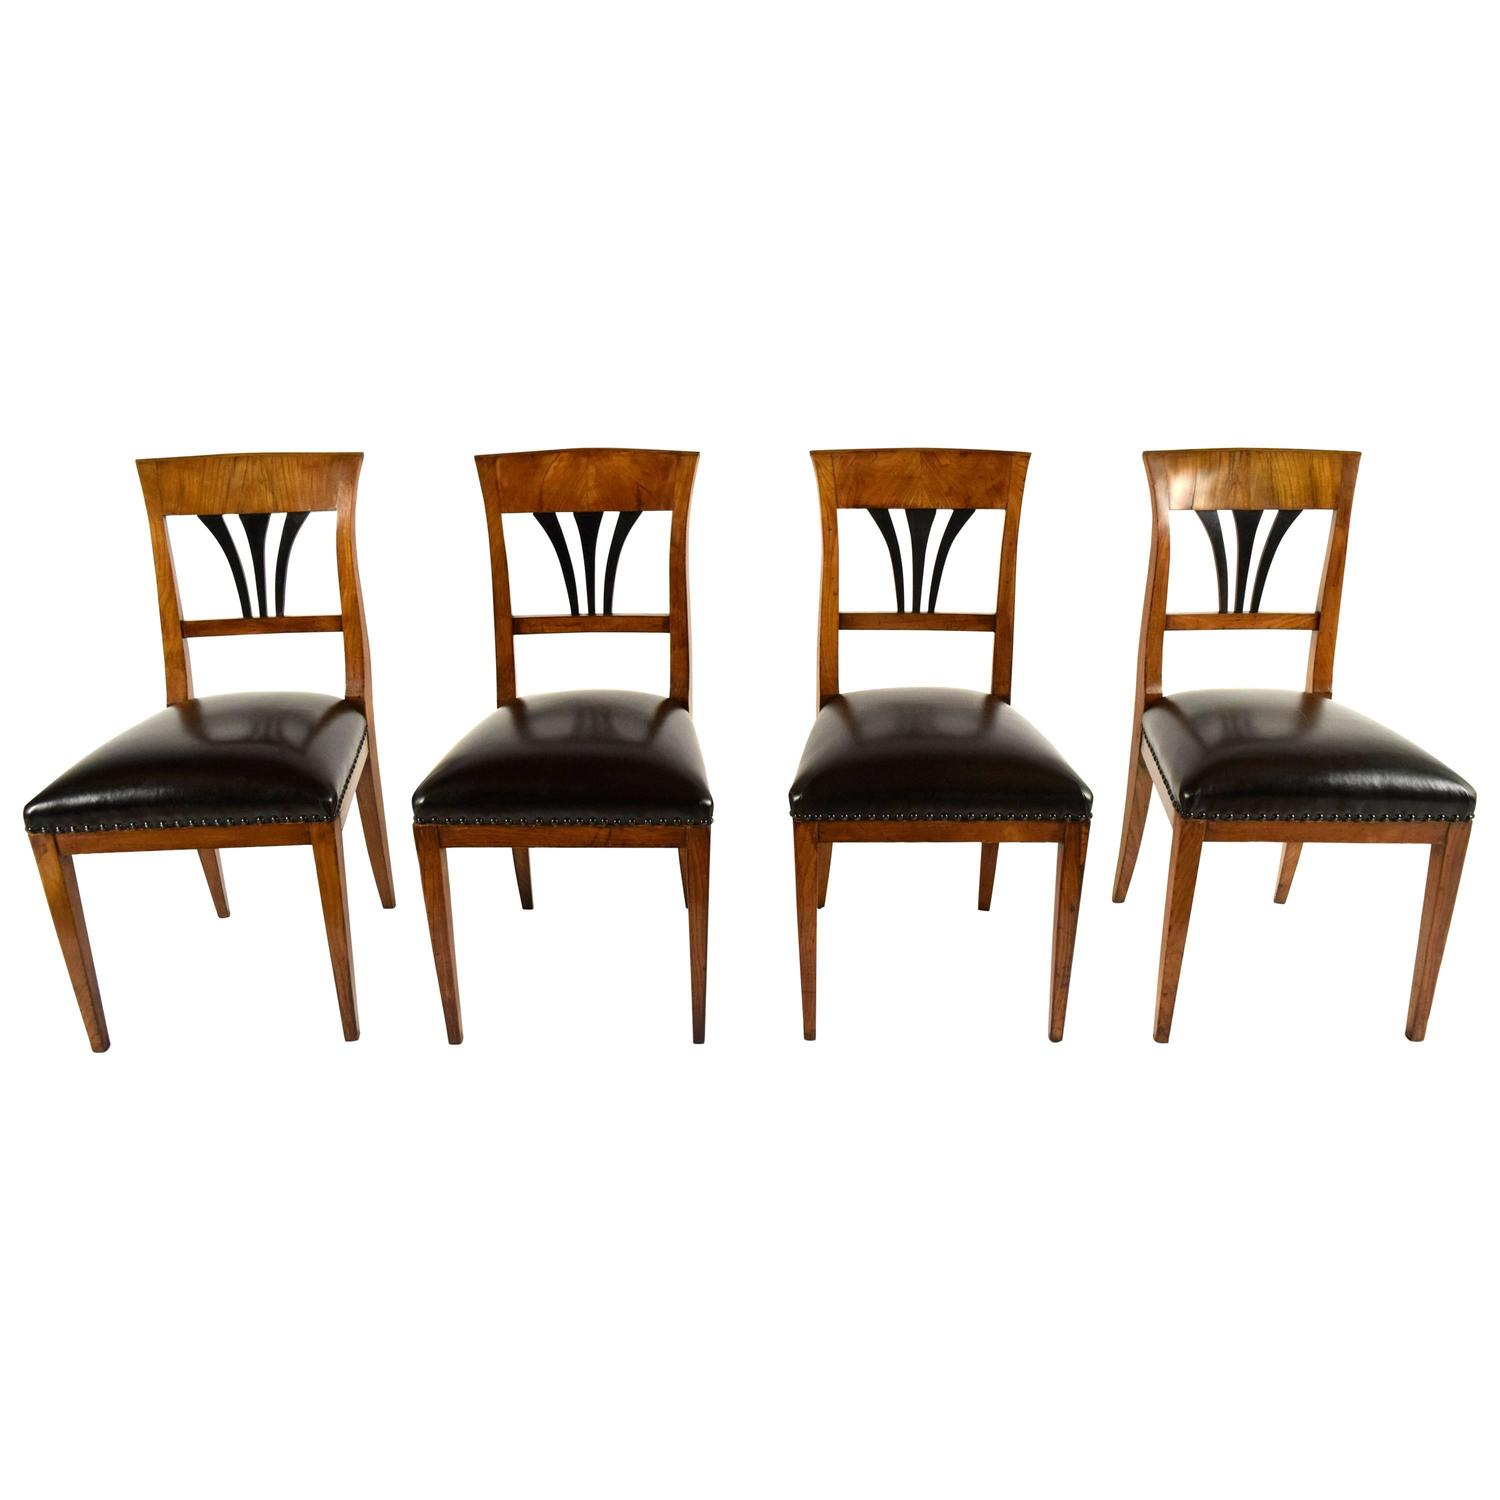 Set Of Four Dining Chairs 19th Century Biedermeier Style For Sale At 1stdibs